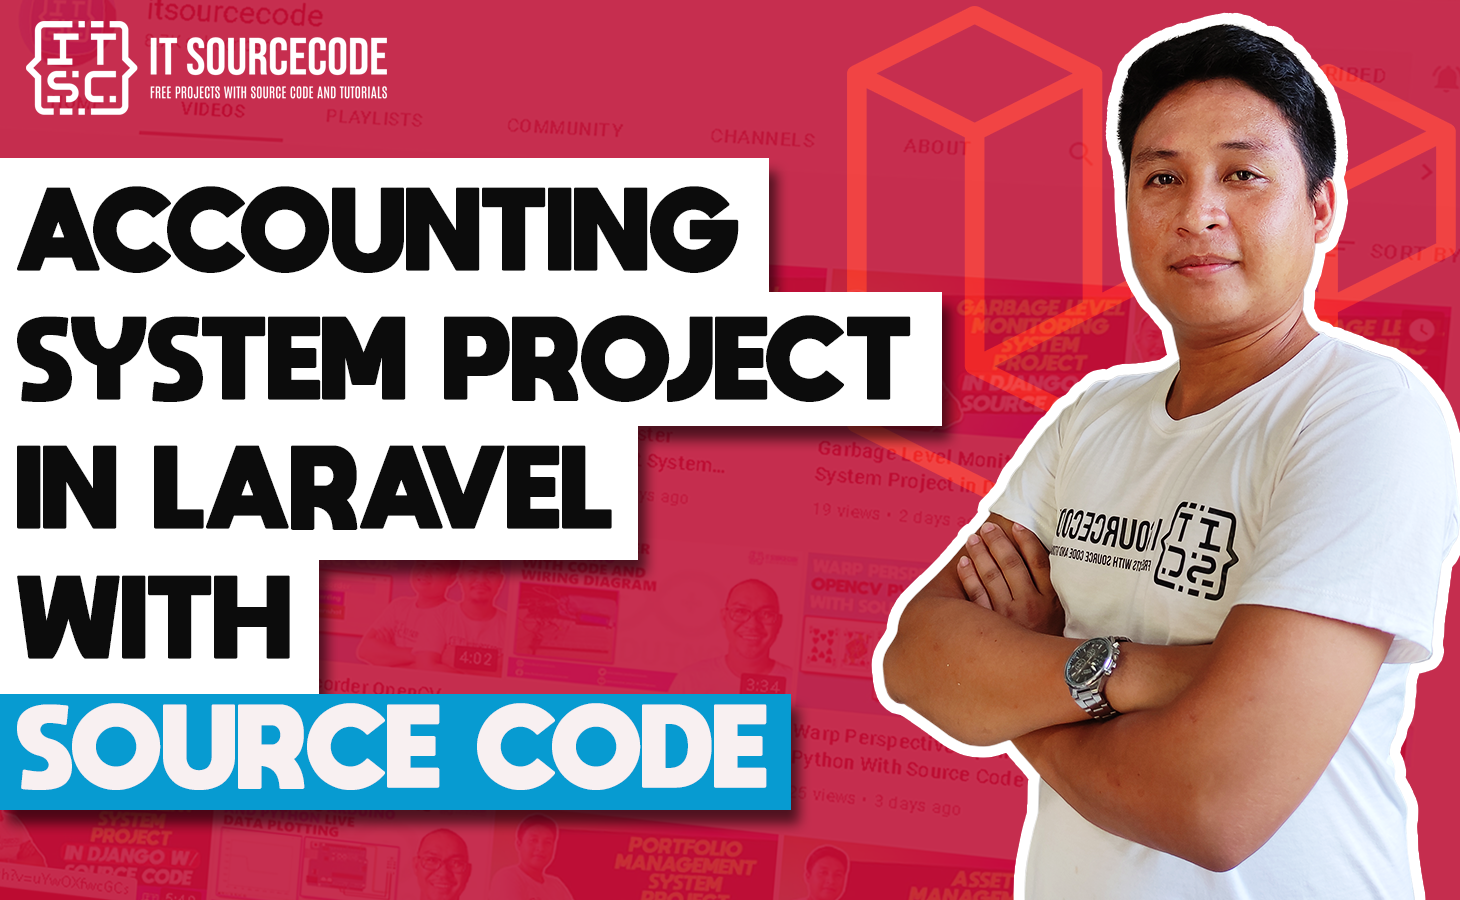 Accounting System Project in Laravel with Source Code